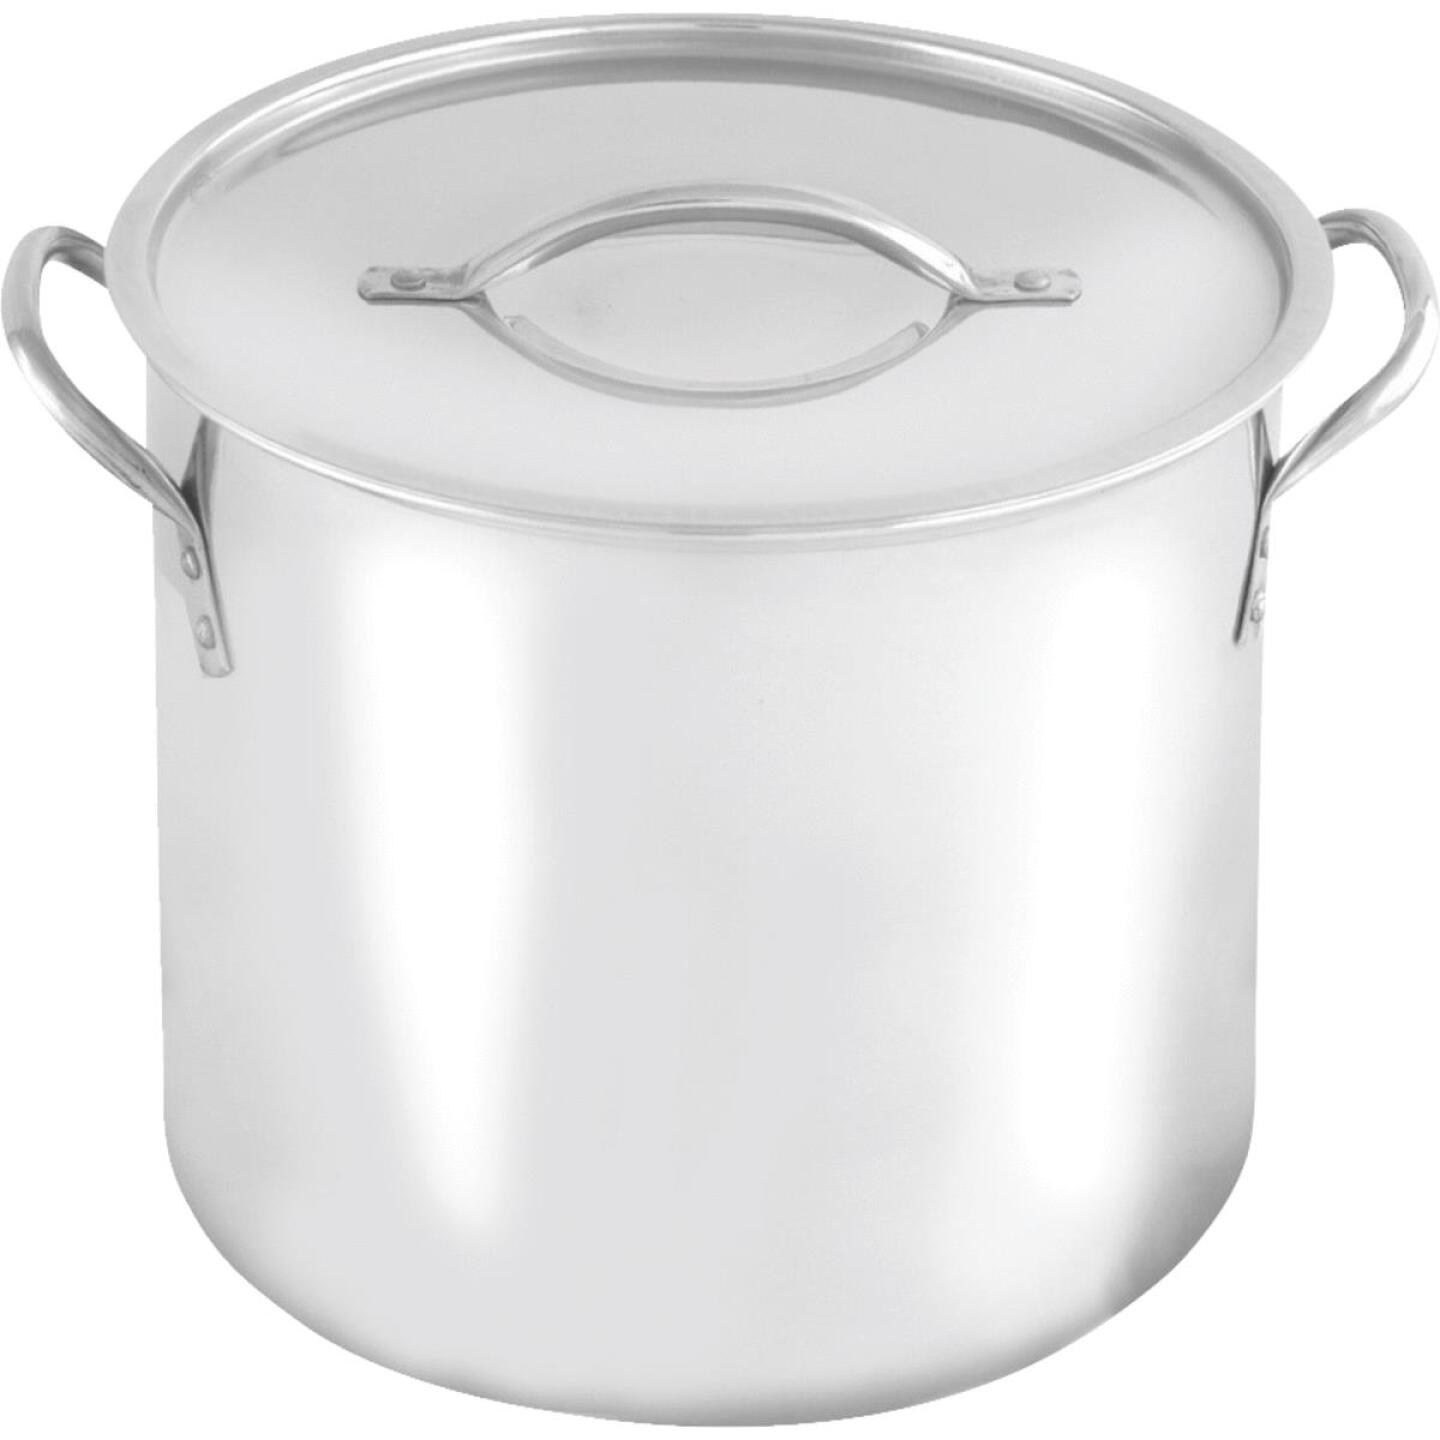 McSunley 16 Qt. Polished Stainless Steel Stockpot Image 1